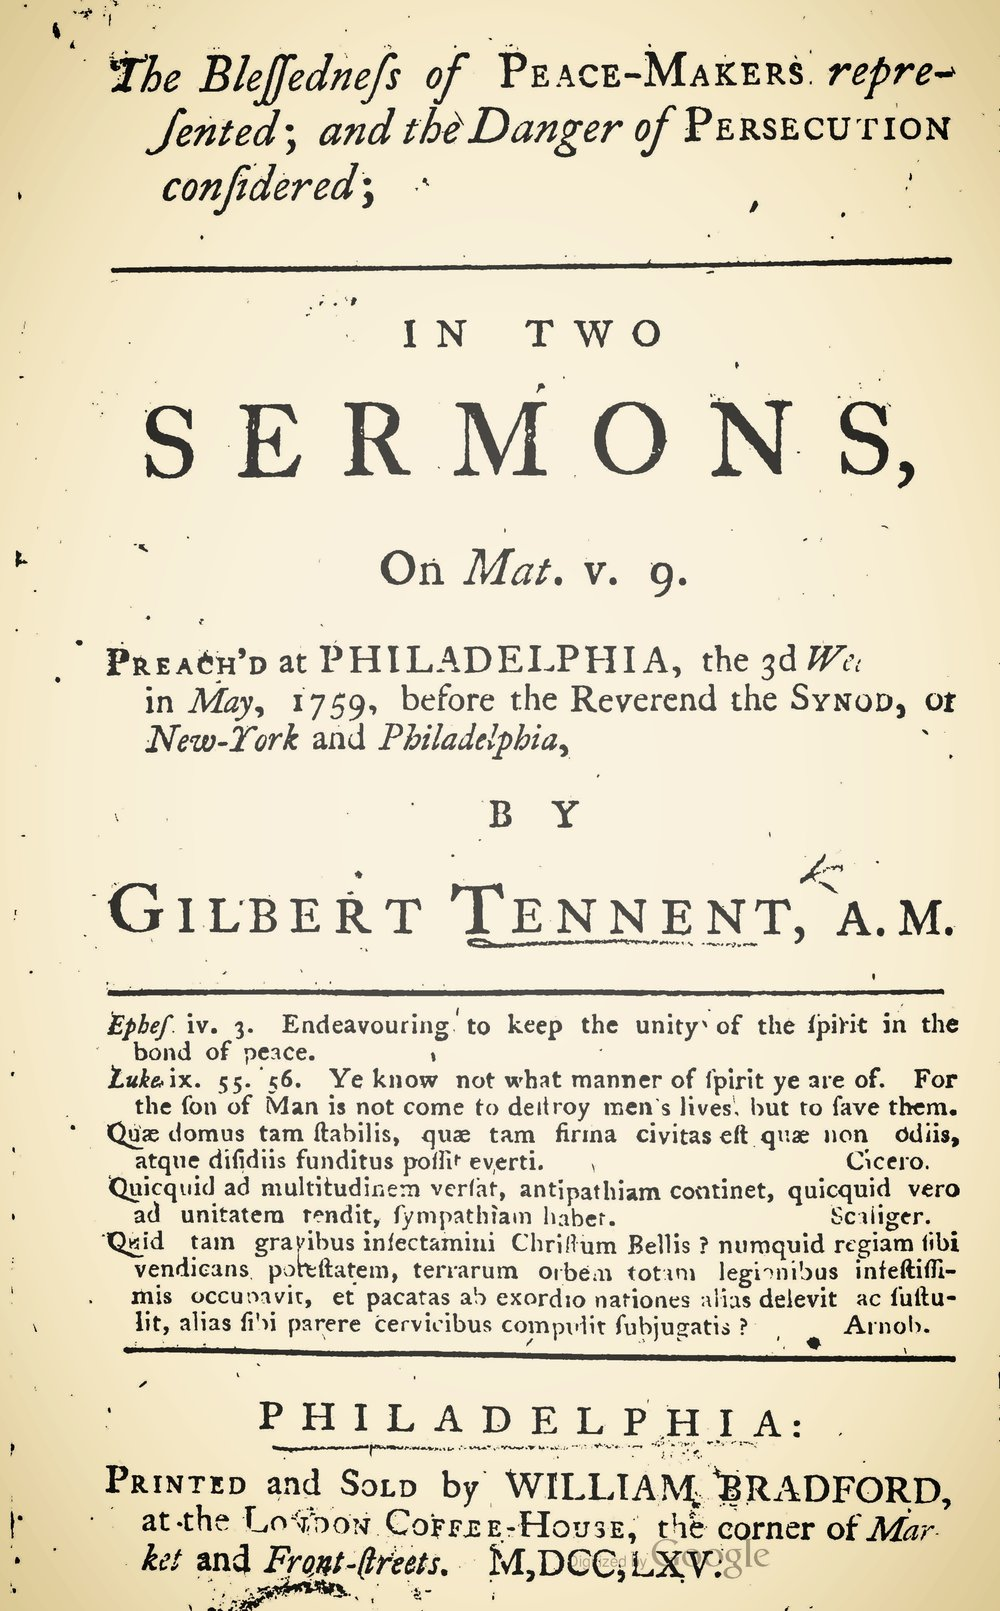 Tennent, Gilbert, The Blessedness of Peace-Makers Represented; and the Danger of Persecution Considered Title Page.jpg